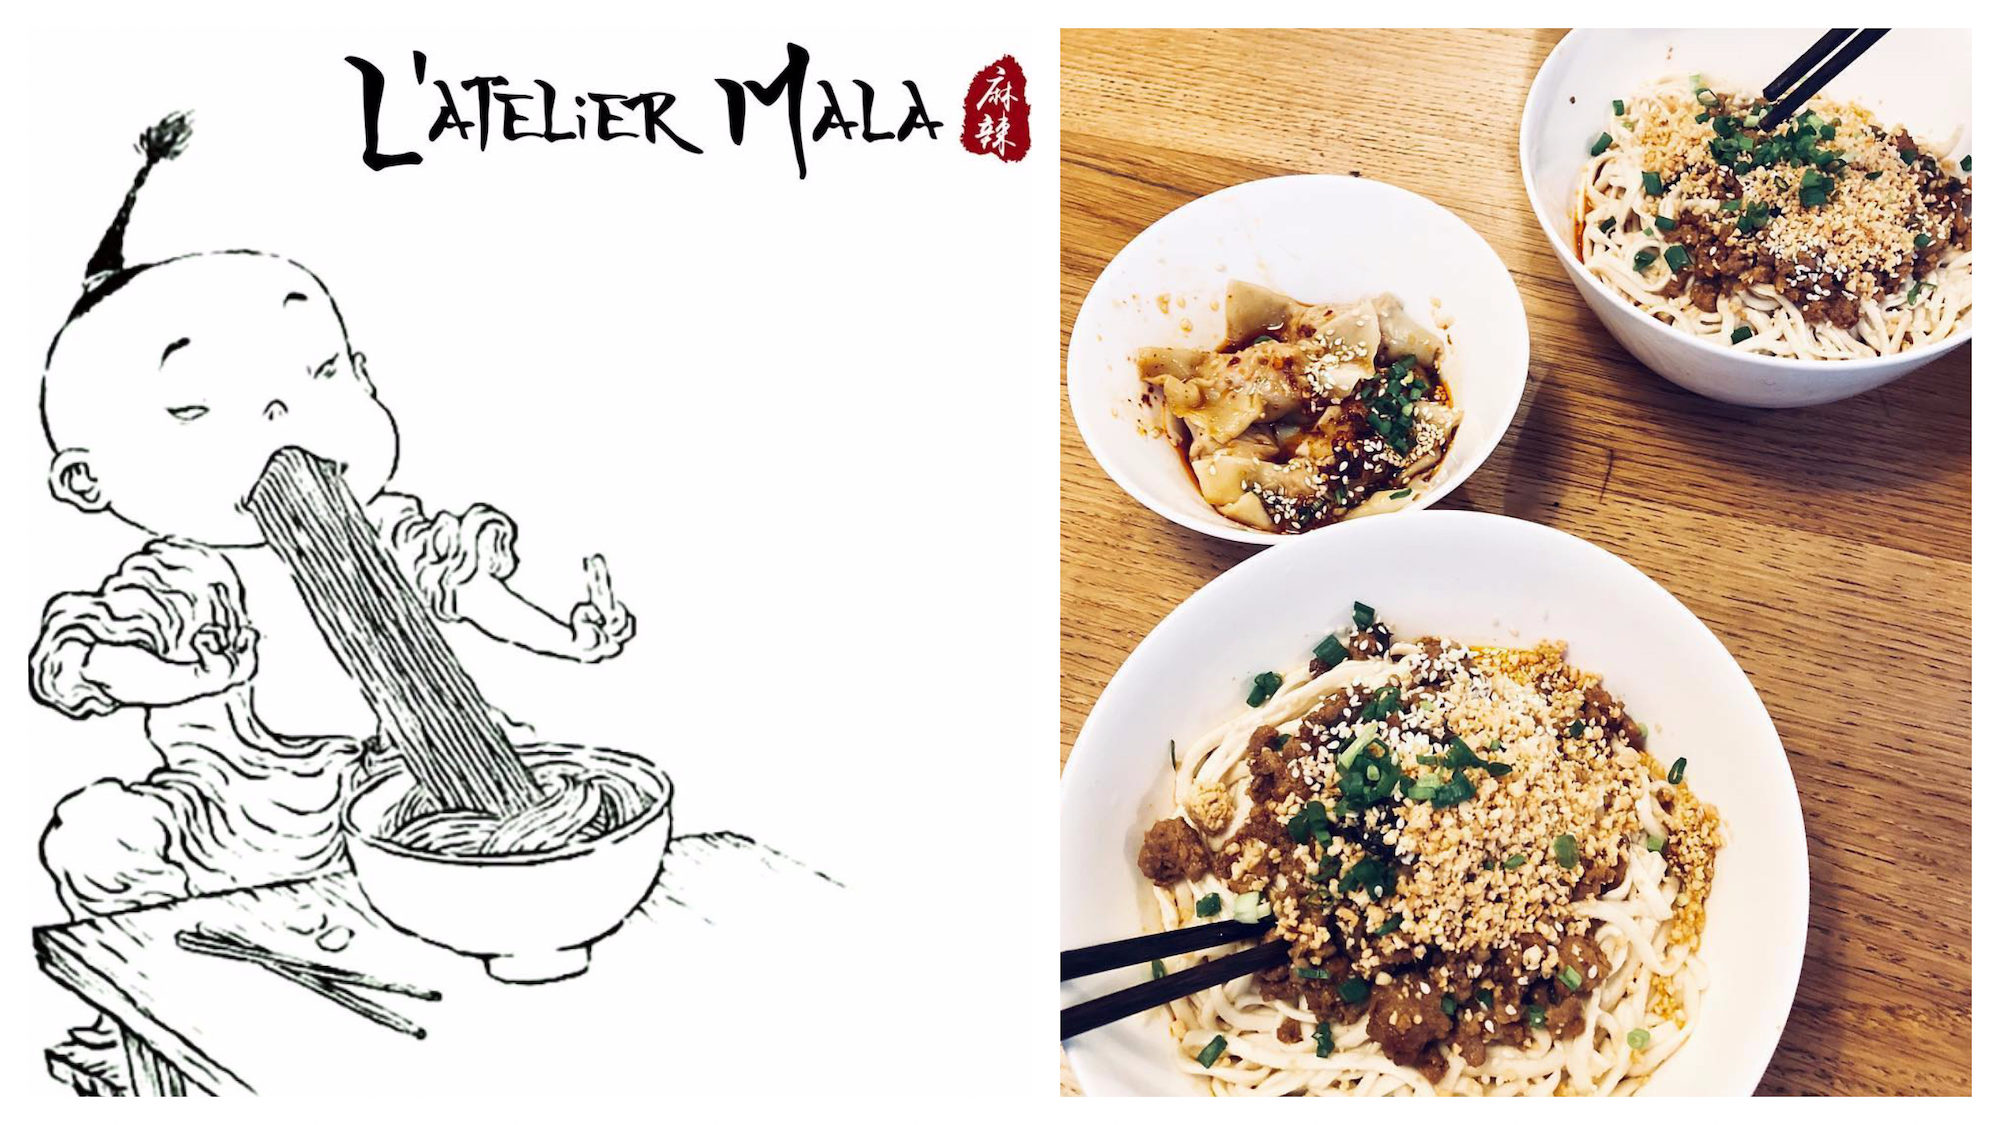 Go to L'Atelier Mala restaurant for the best authentic Chinese food in Paris, like tasty noodles, as in the restaurant's poster of a little cartoon Chinese boy hoovering up noodles (left) and tangy raviolis (right).